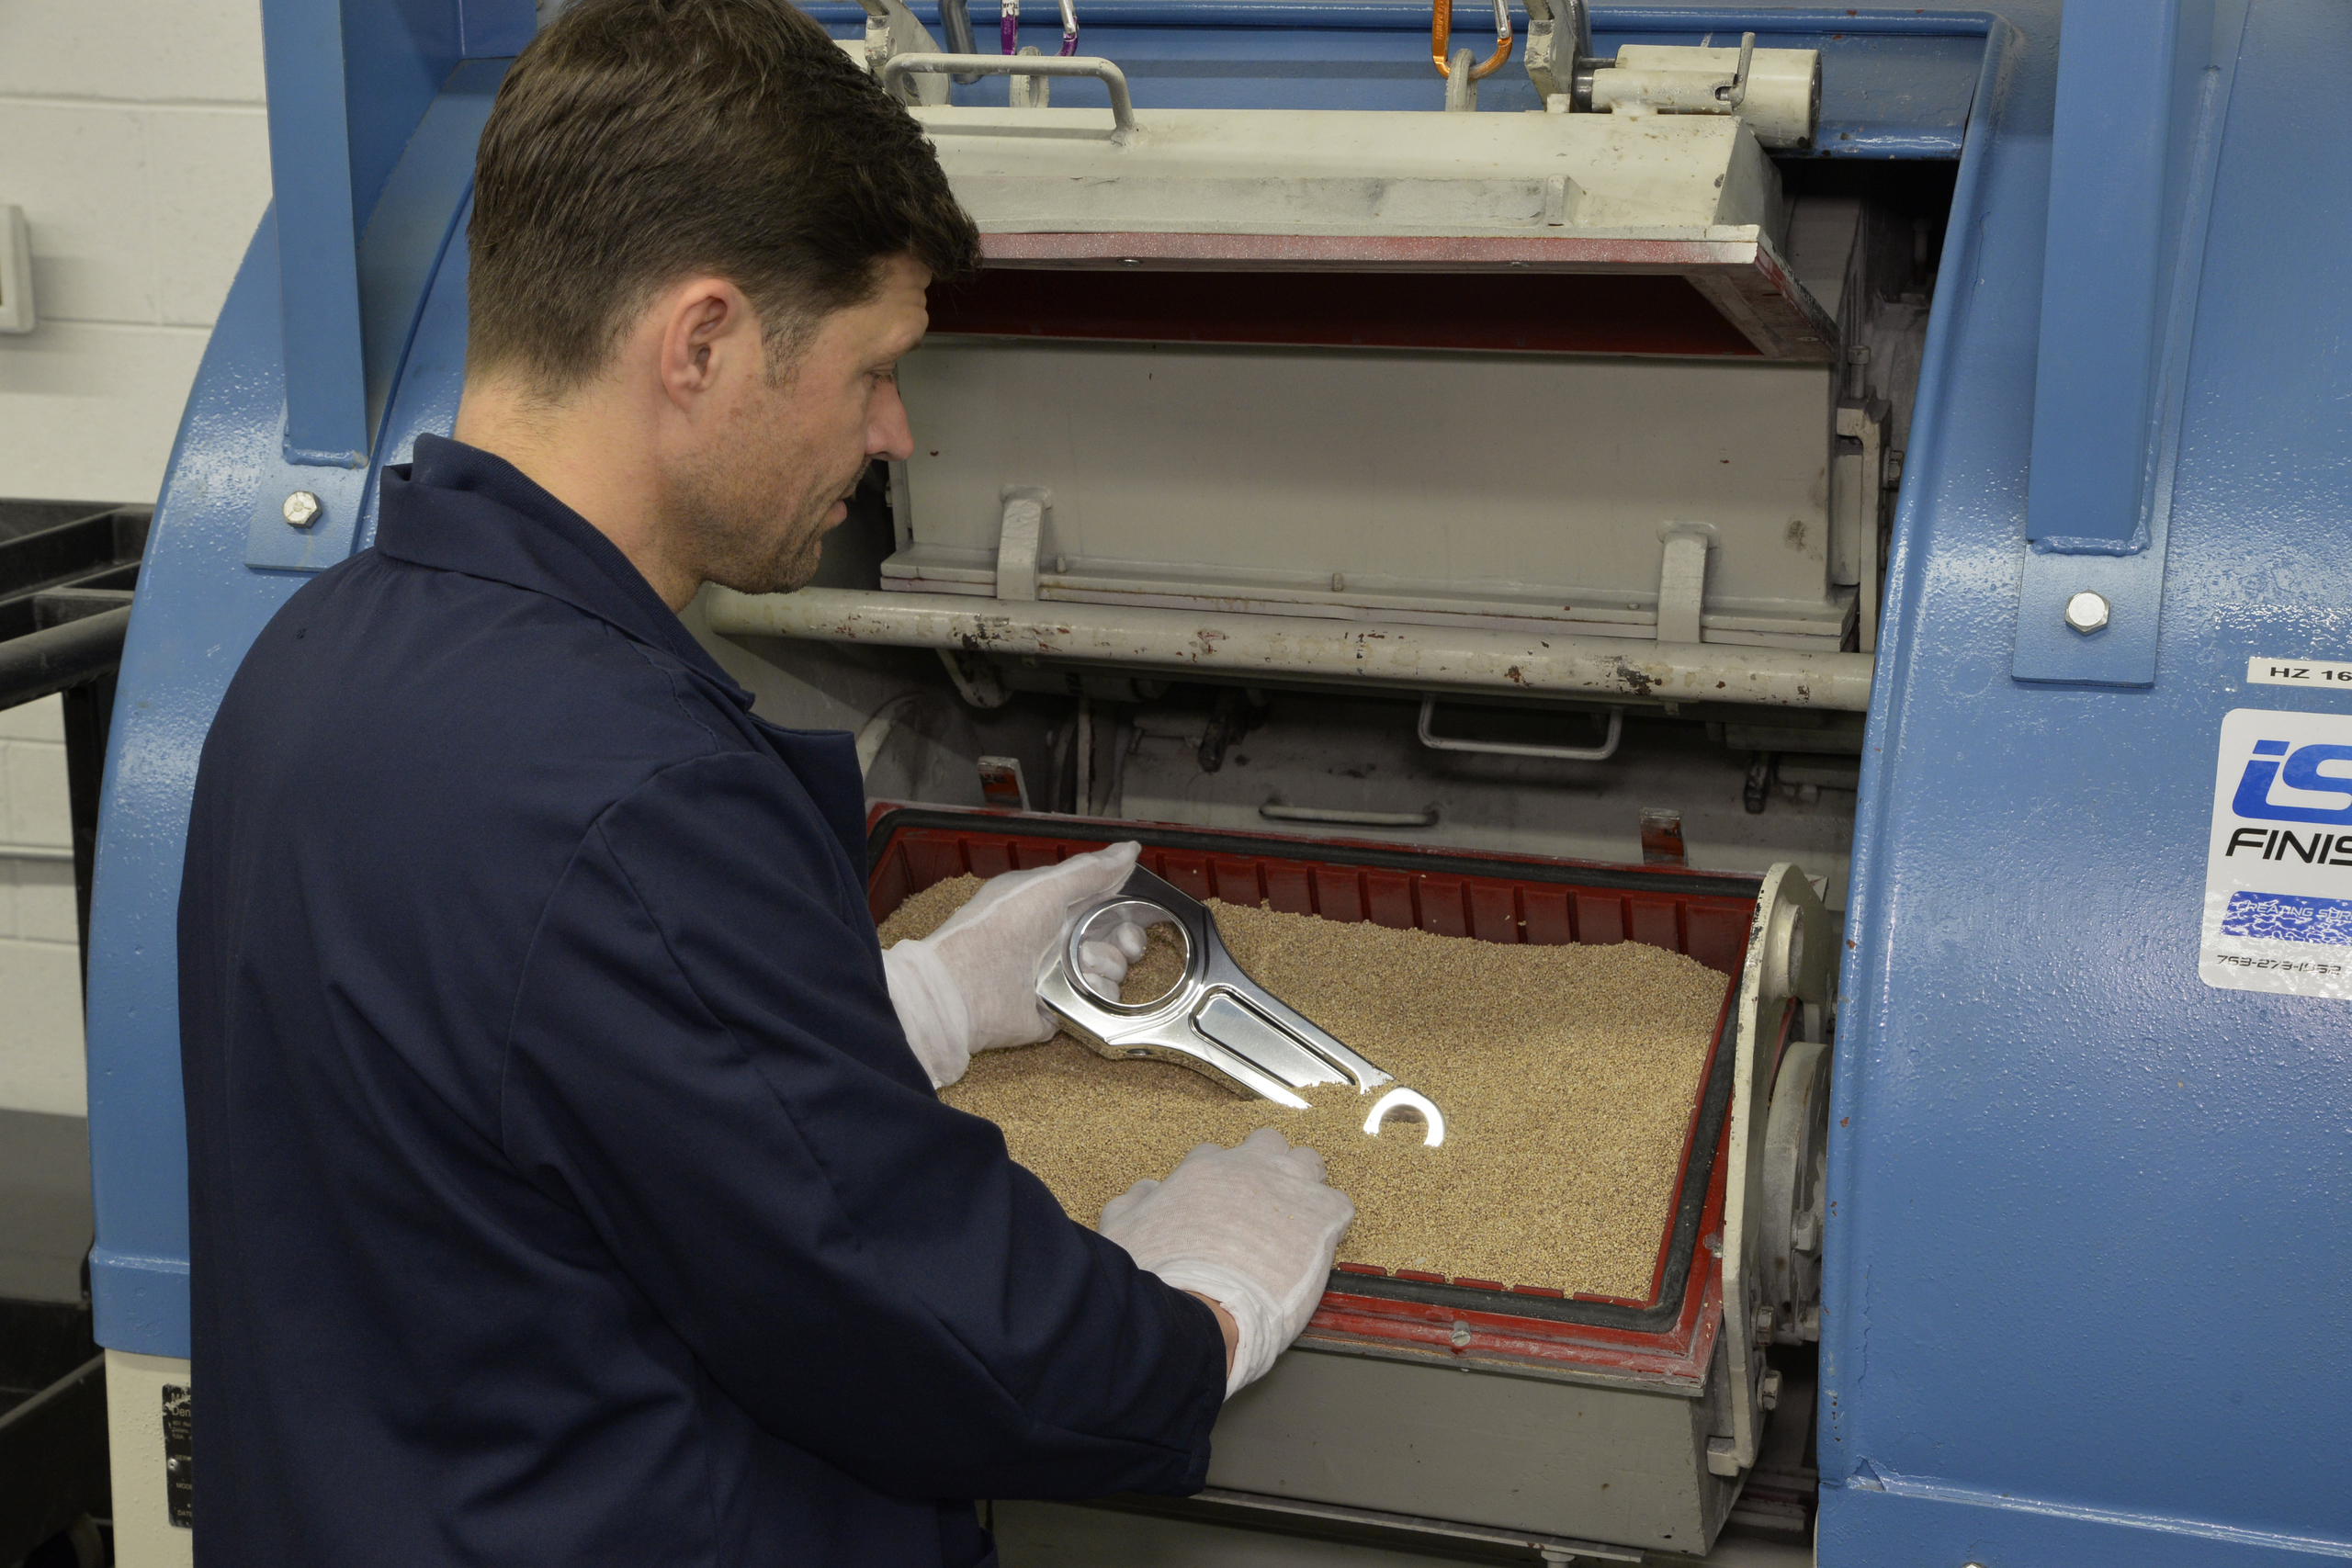 Centrifugal Iso-Finishing Technology – High-speed and Hands-free Deburring and Super ISO-finishing: The Free Sample Part Processing Program for 3D-Printed Parts and Machined Components